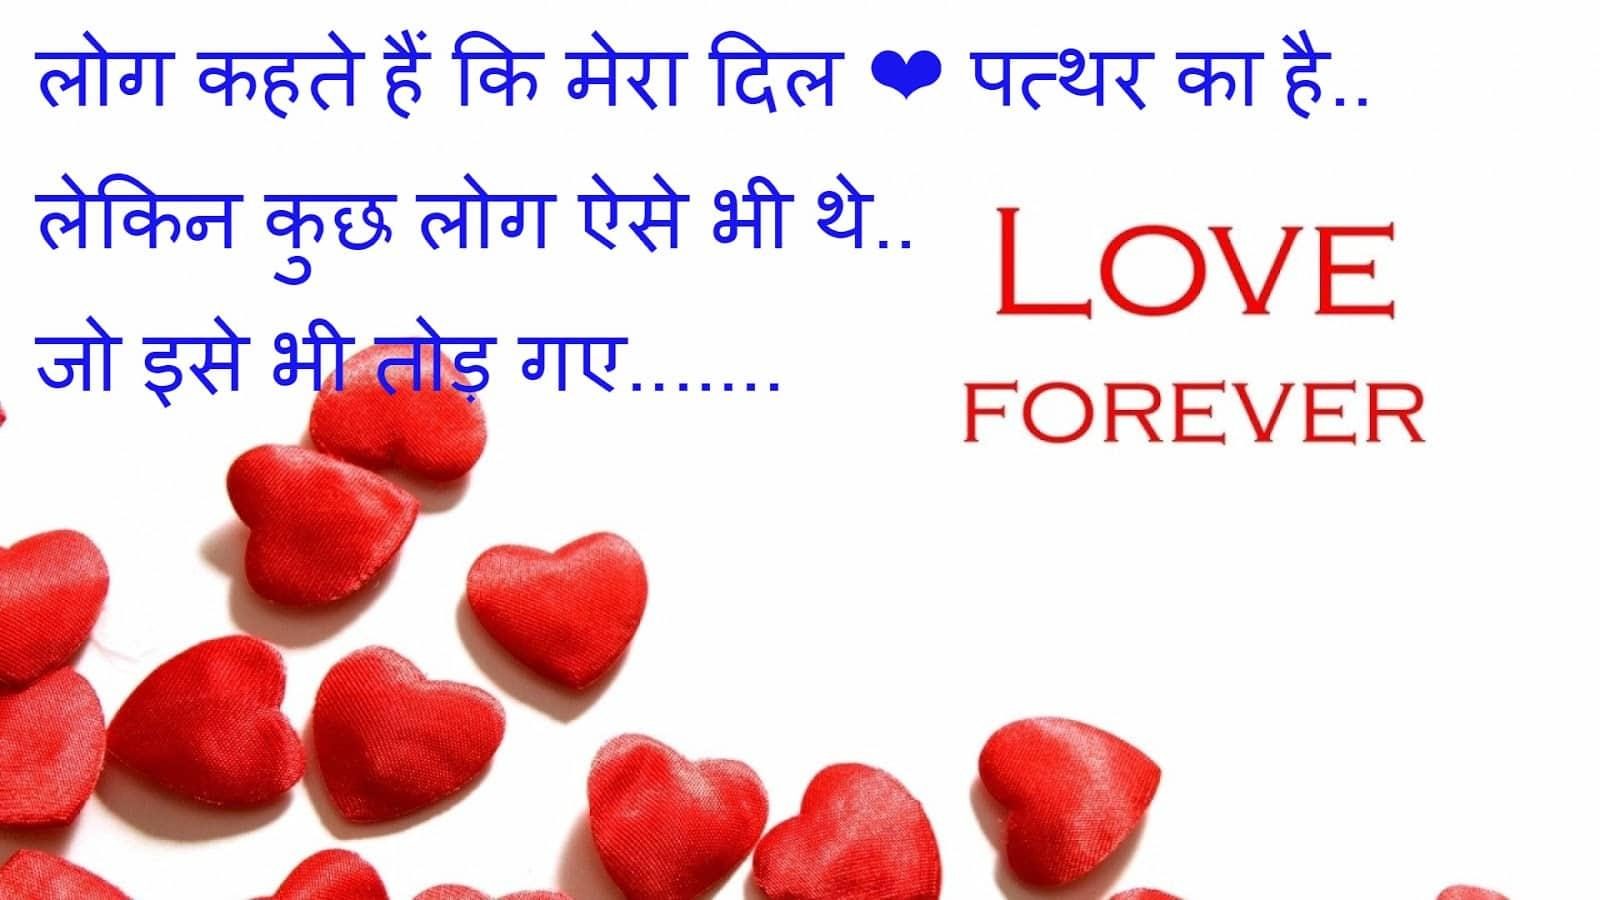 Hindi Love Quotes 2017 screenshot